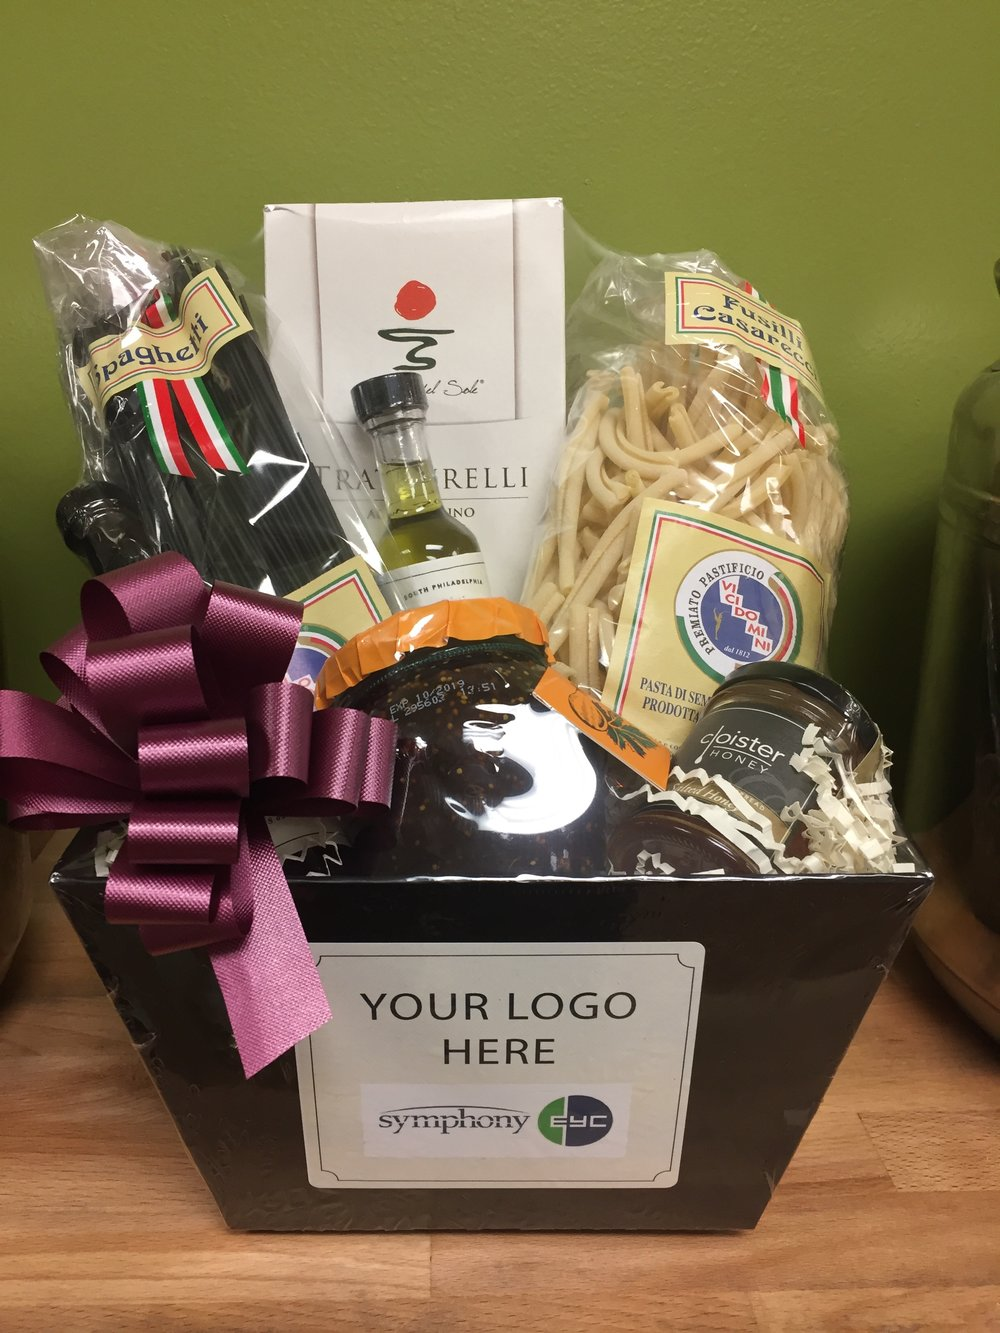 - We offer corporate gifts customized with your logo and message.Premium Italian Specialty Gift BasketFeatures: Extra Virgin Olive Oil, Traditional Balsamic, Pasta, Preserves, Honey, Rosemary BreadsticksCustom logos -Please email your logo file in .JPG or .EPS format to info@cardenastaproom.com.PRICE: $64.95 +shipping